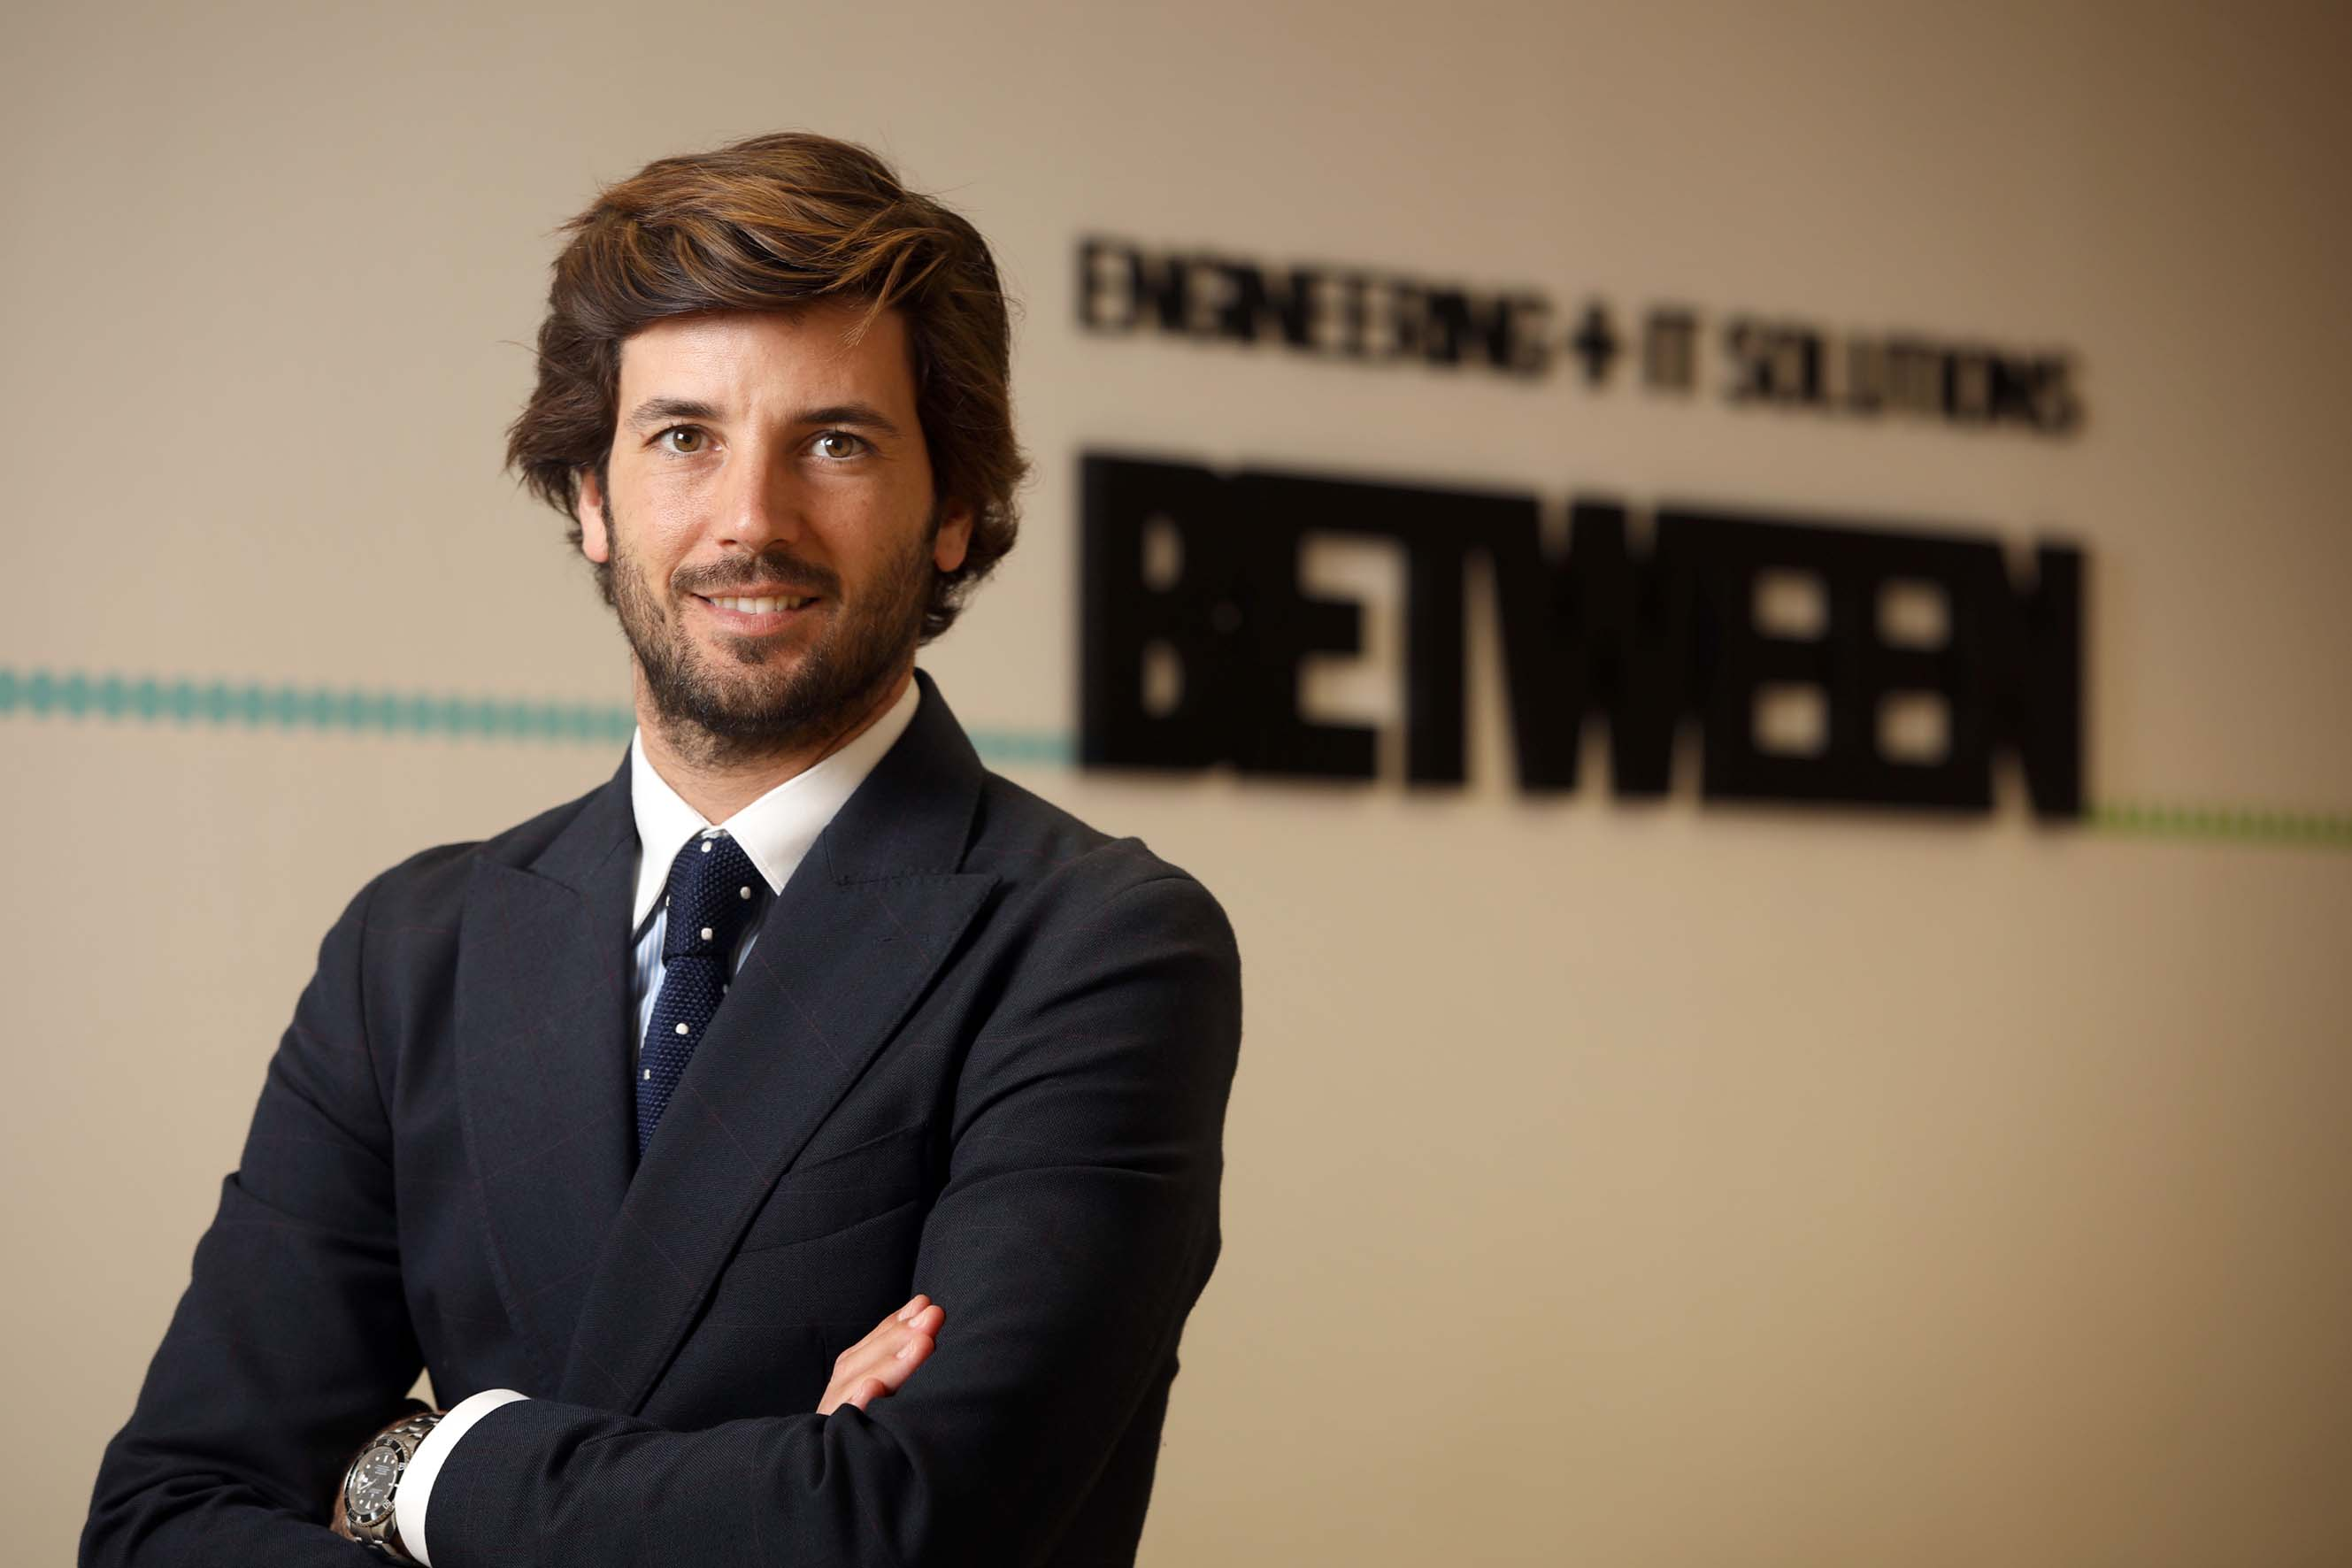 BETWEEN aligns its commercial strategy for 2020 with a new Engineering & IT Sales Director